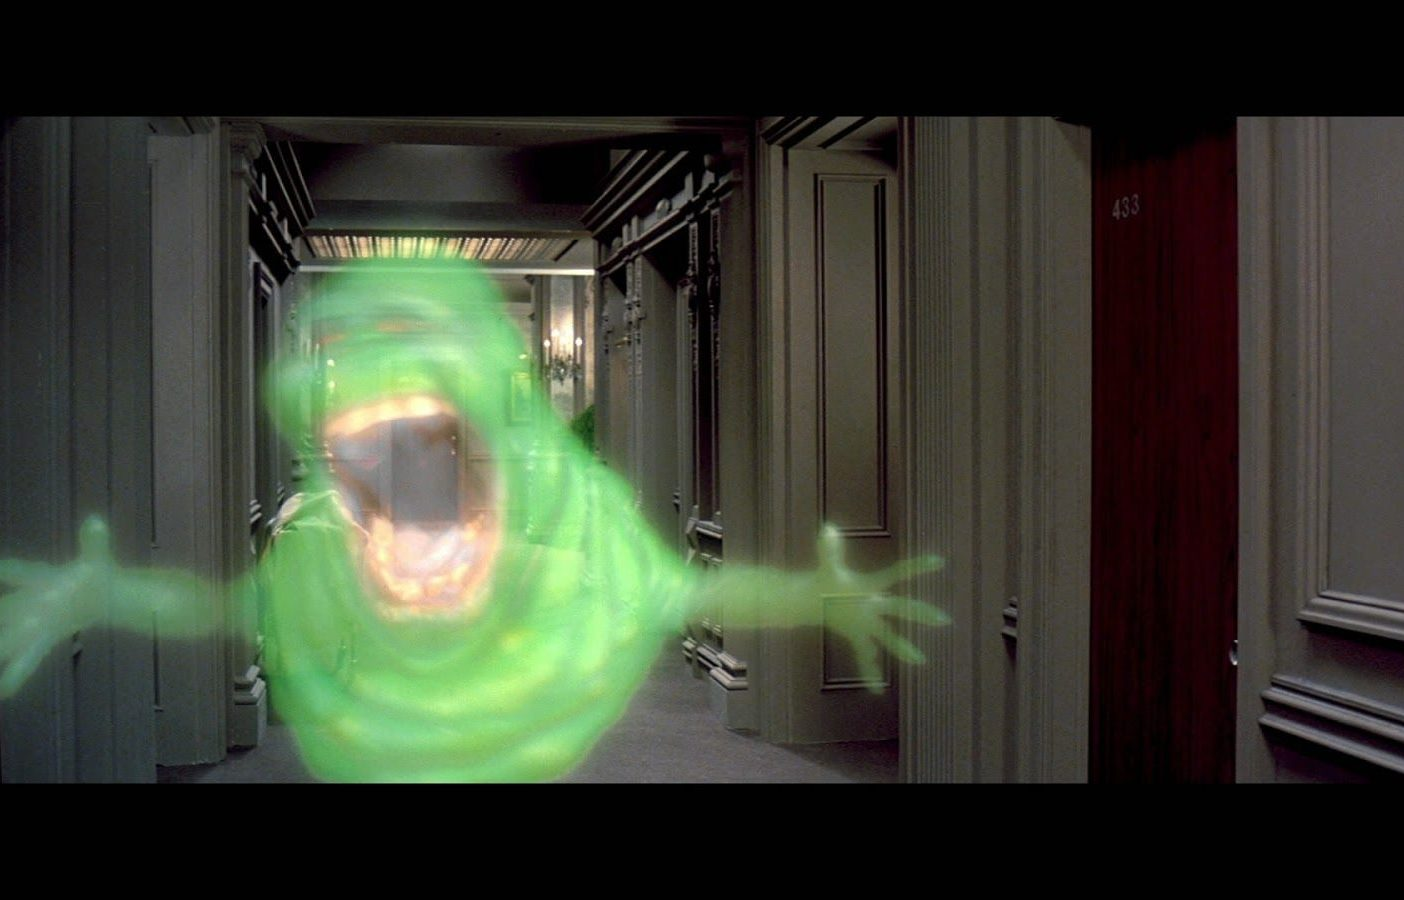 Slimer form Ghostbusters